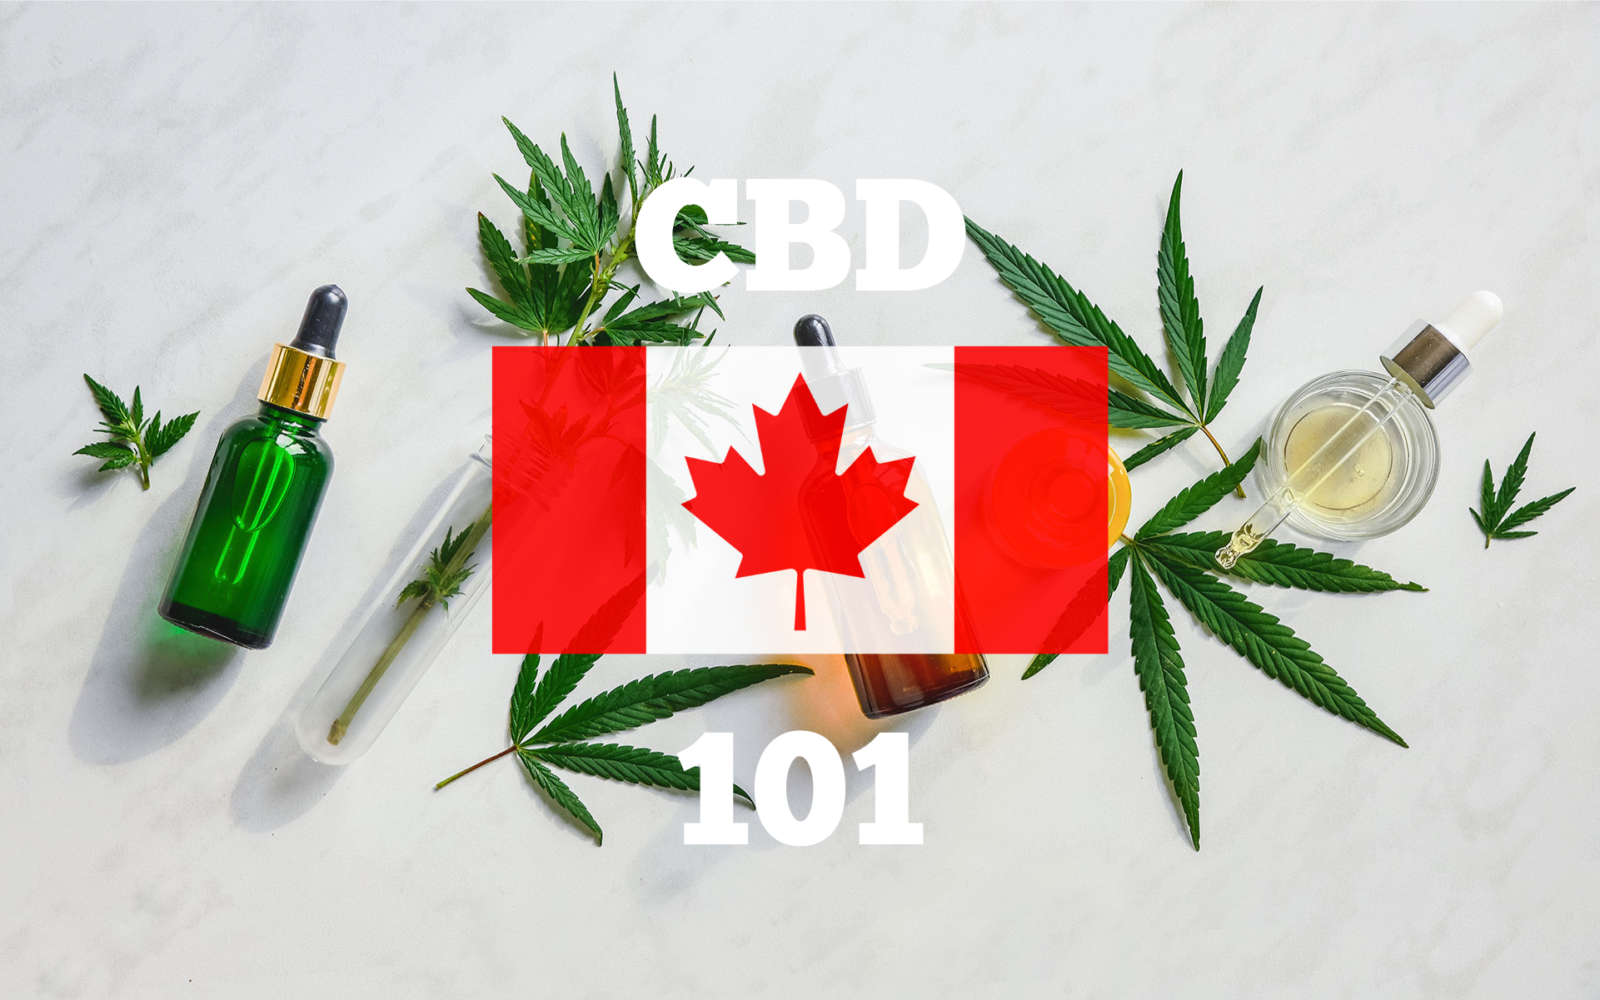 visualizes the subject of contents for those interested in cbd oil in canada